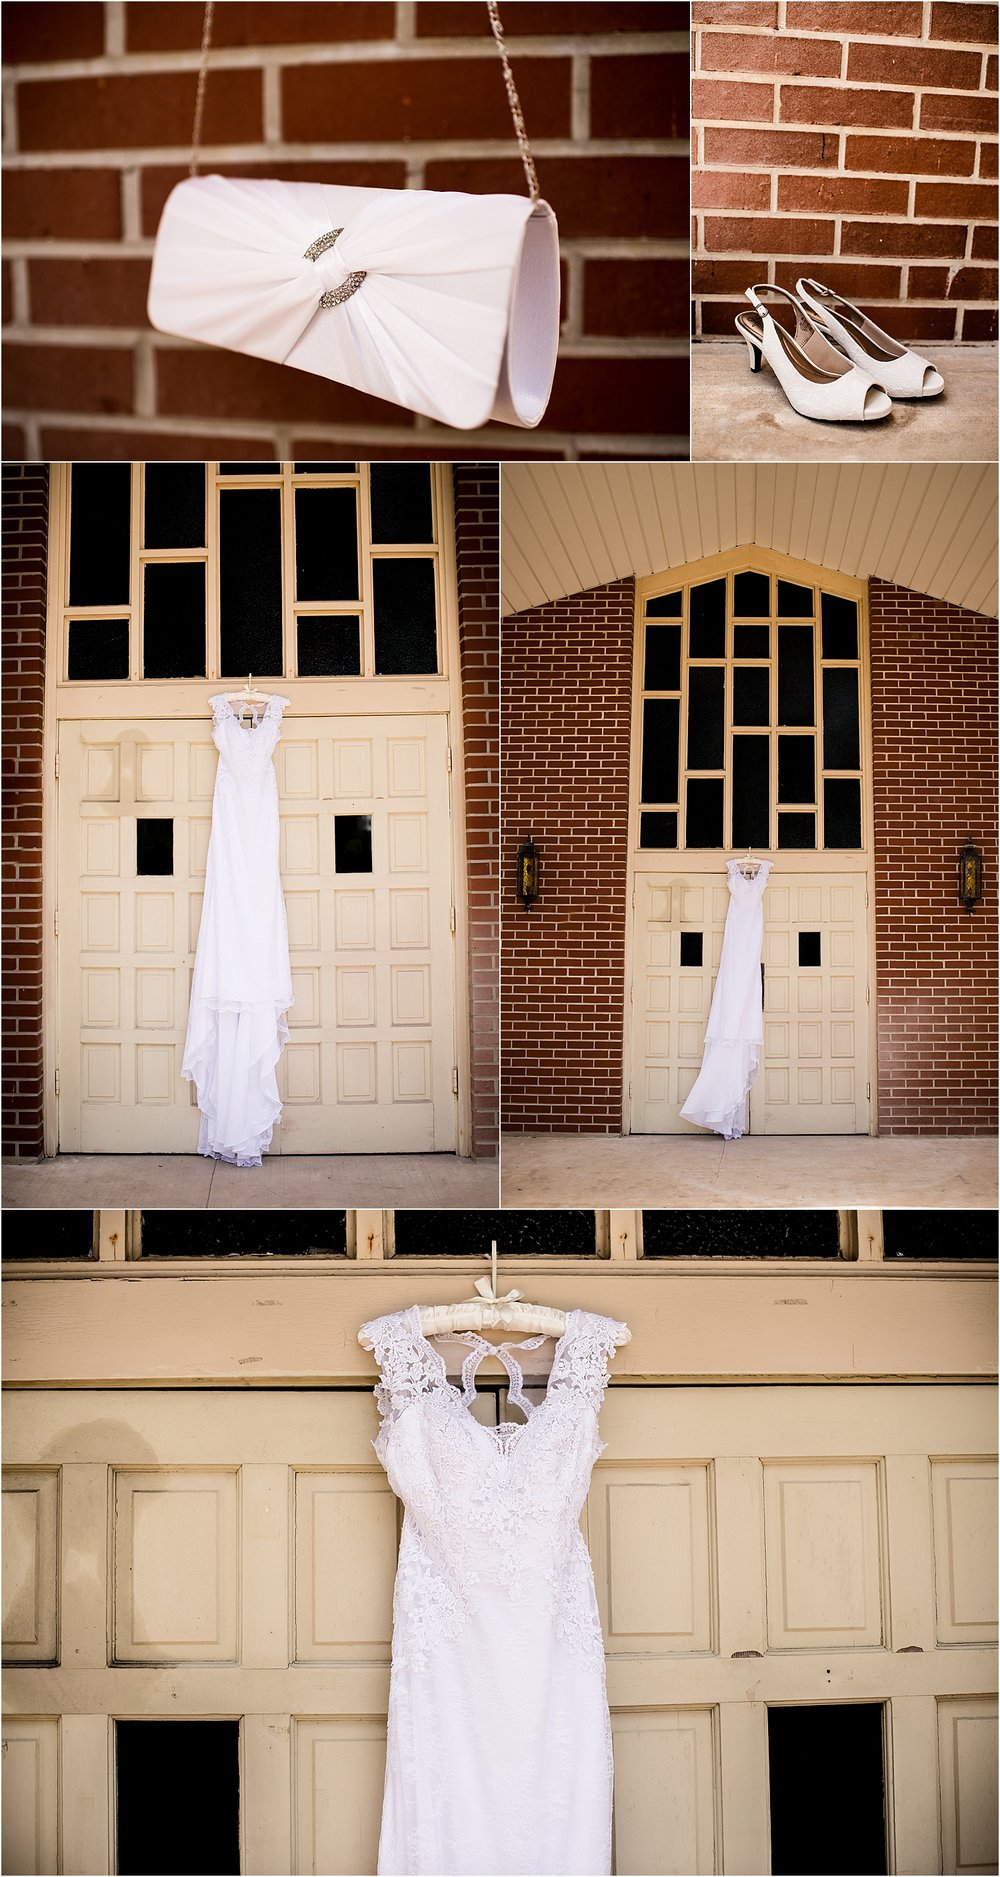 Vintage-Bridal-Wedding-Details-Gainesville-Florida